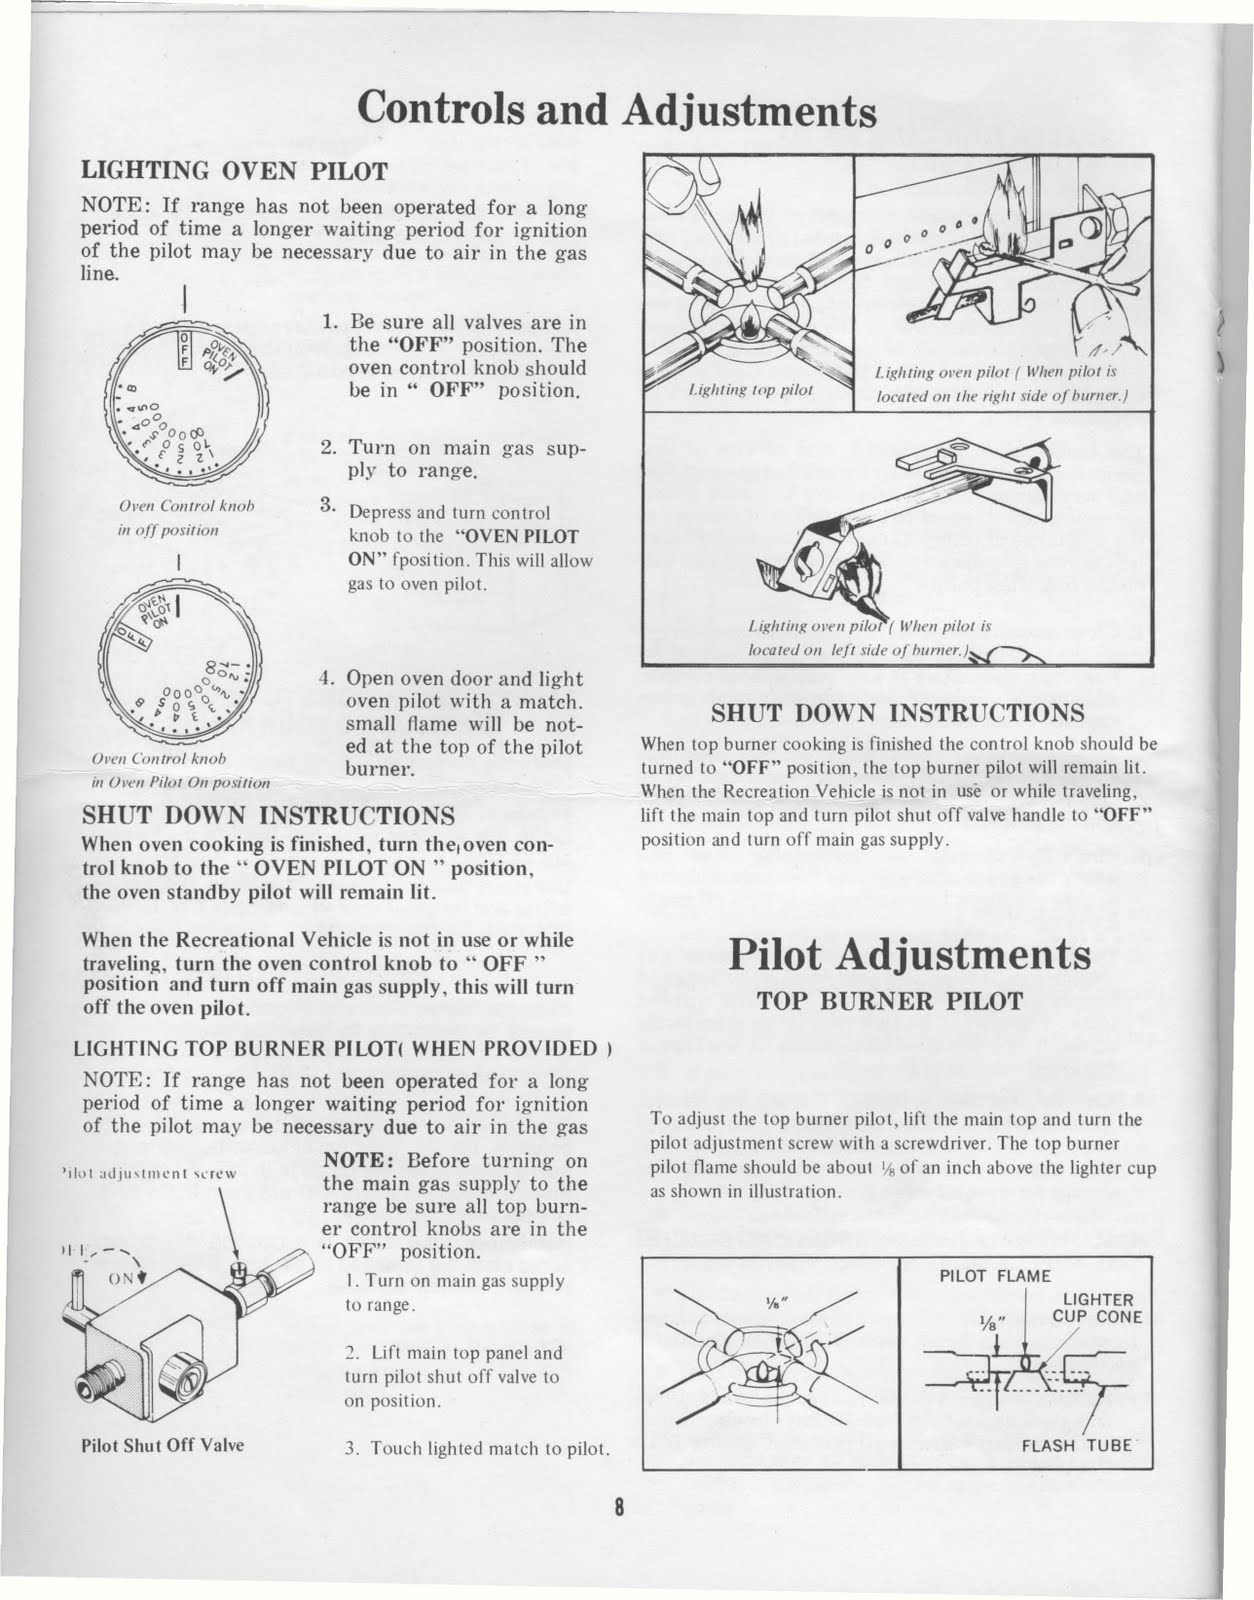 Magic Chef Range Manuals Stove Wiring Diagram Fleetwood Pace Arrow Owners Manual 1254x1600